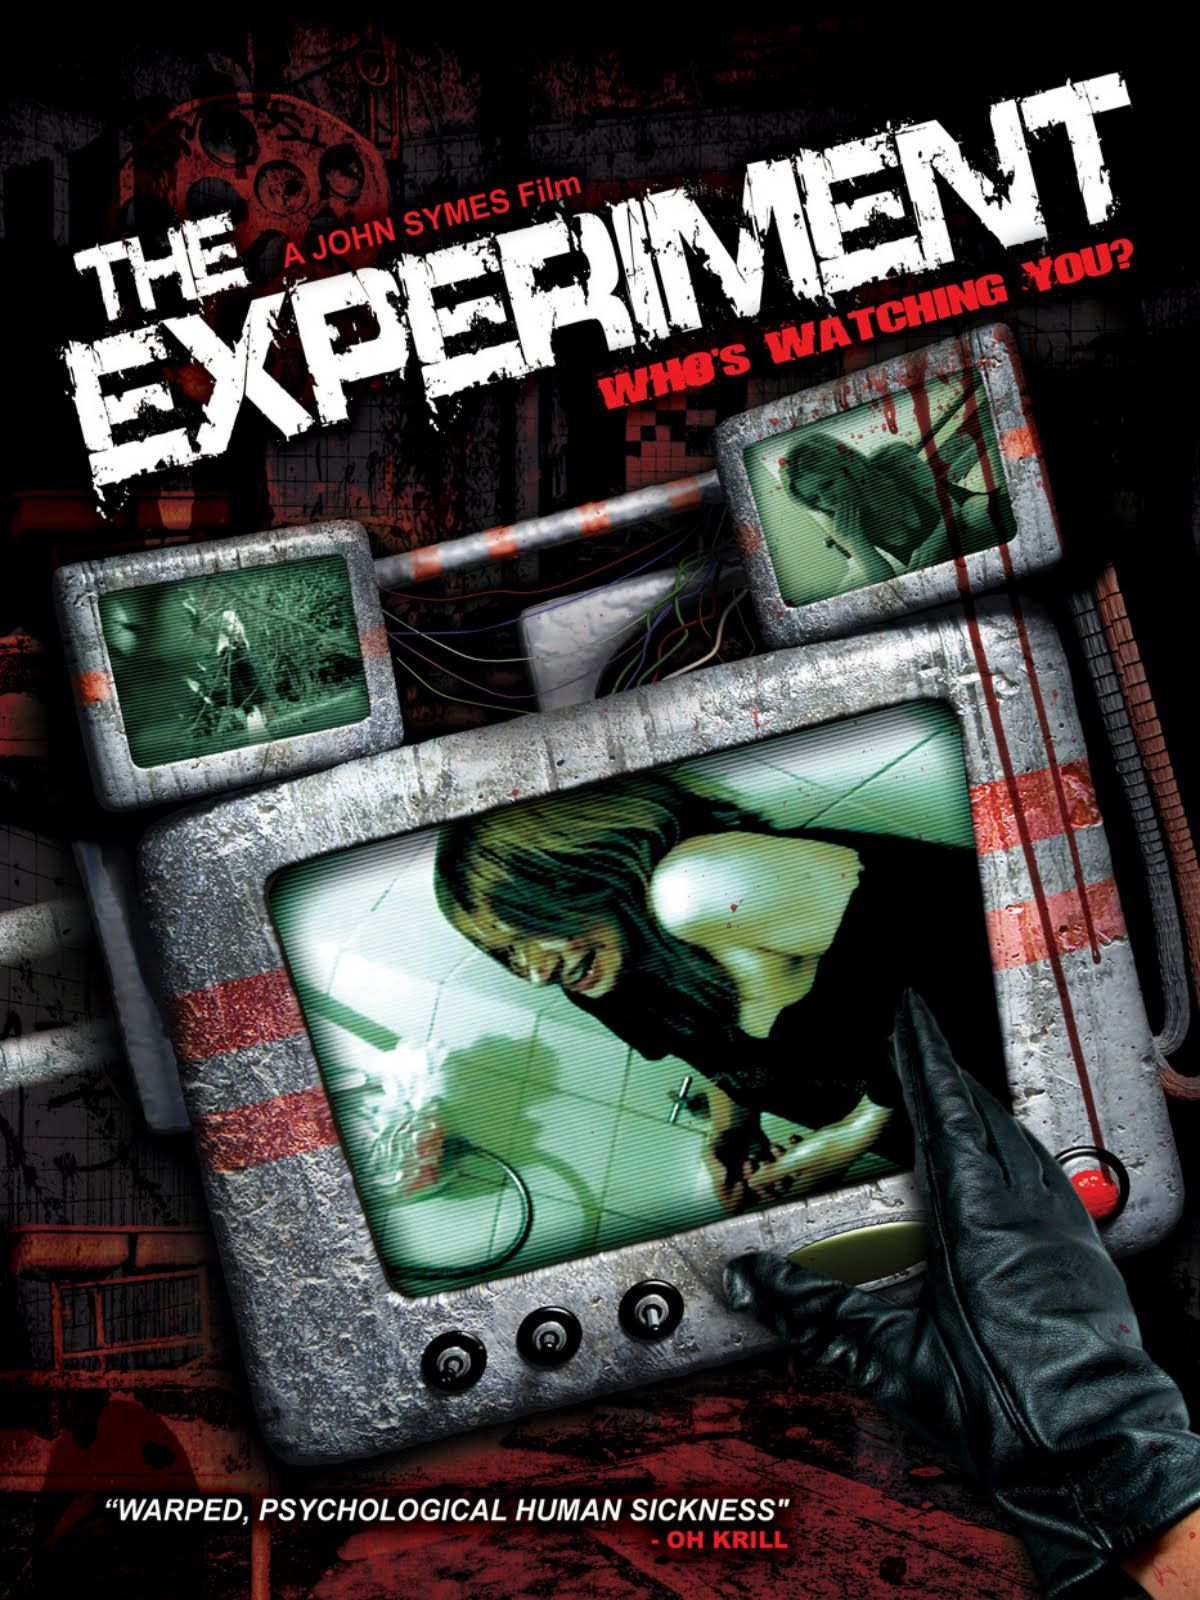 The Experiment: Who's Watching You? - Film (2012)